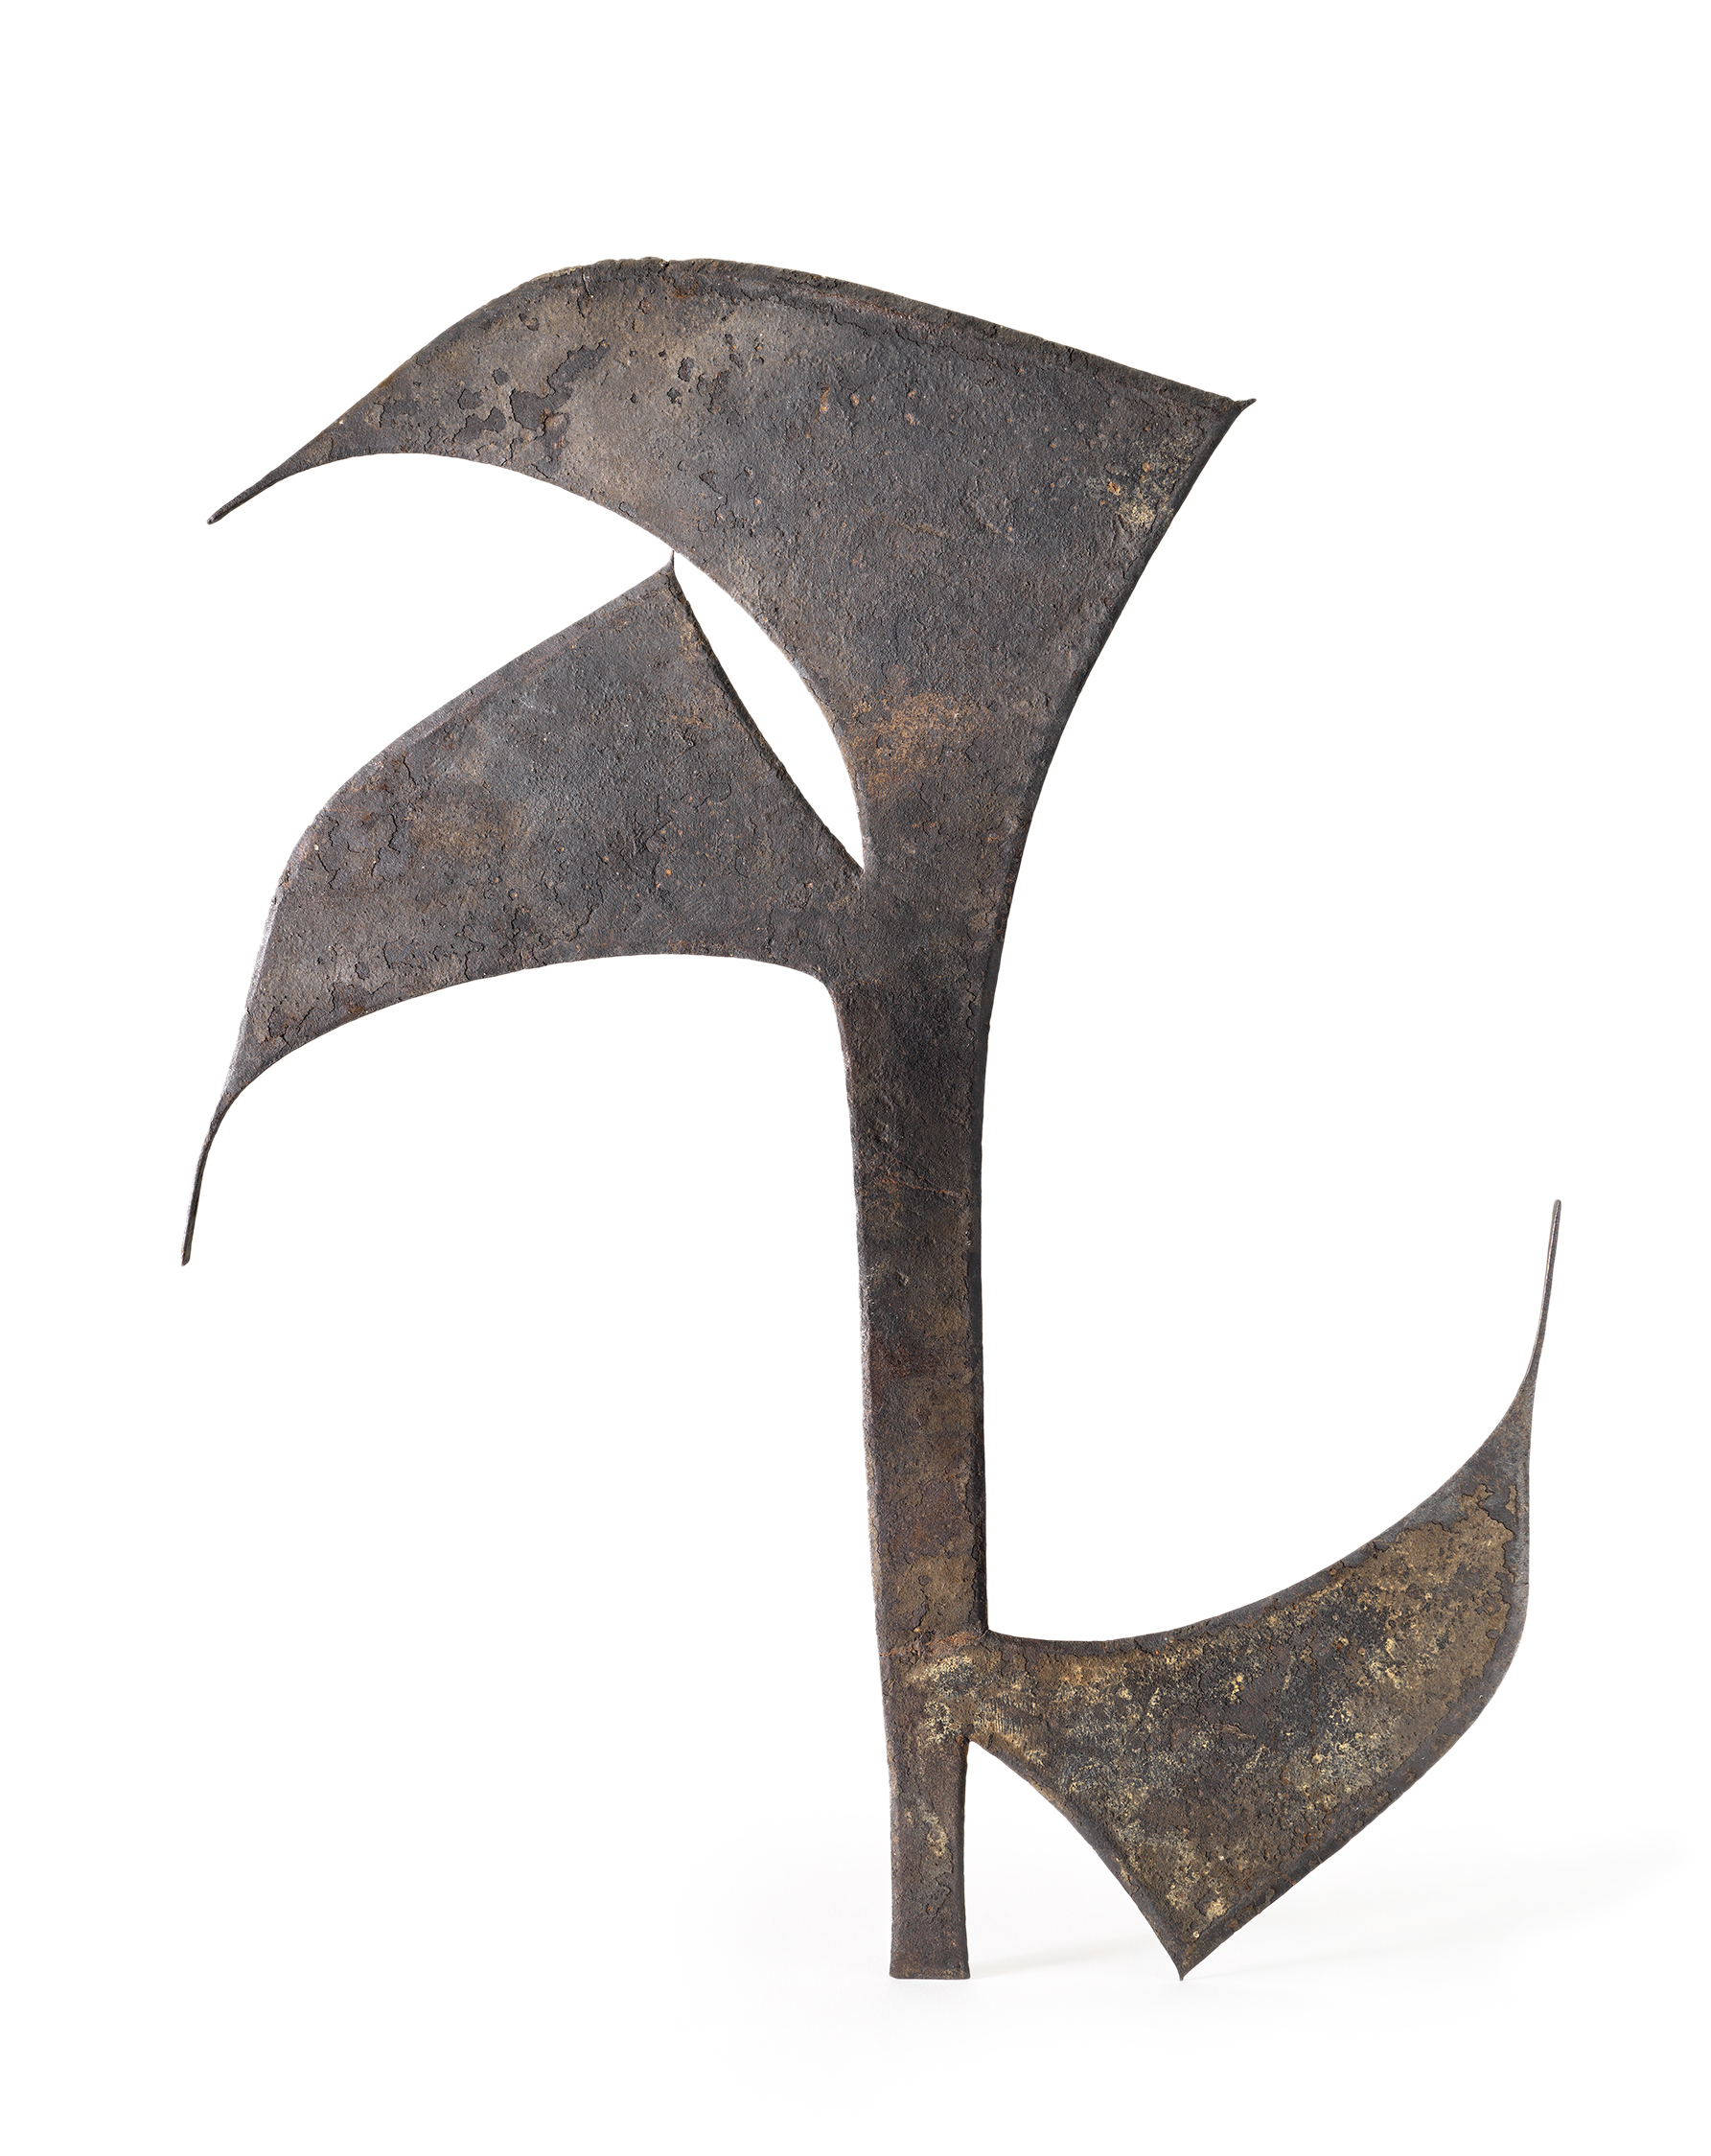 Artist unknown (Nkutshu,Ndengese peoples, Democratic Republic of the Congo), throwing knife–shaped currency (oshele), 19th century, iron,H: 80.65 cm.Private collection.Image © Fowler Museum at UCLA. Photograph Don Cole, 2018